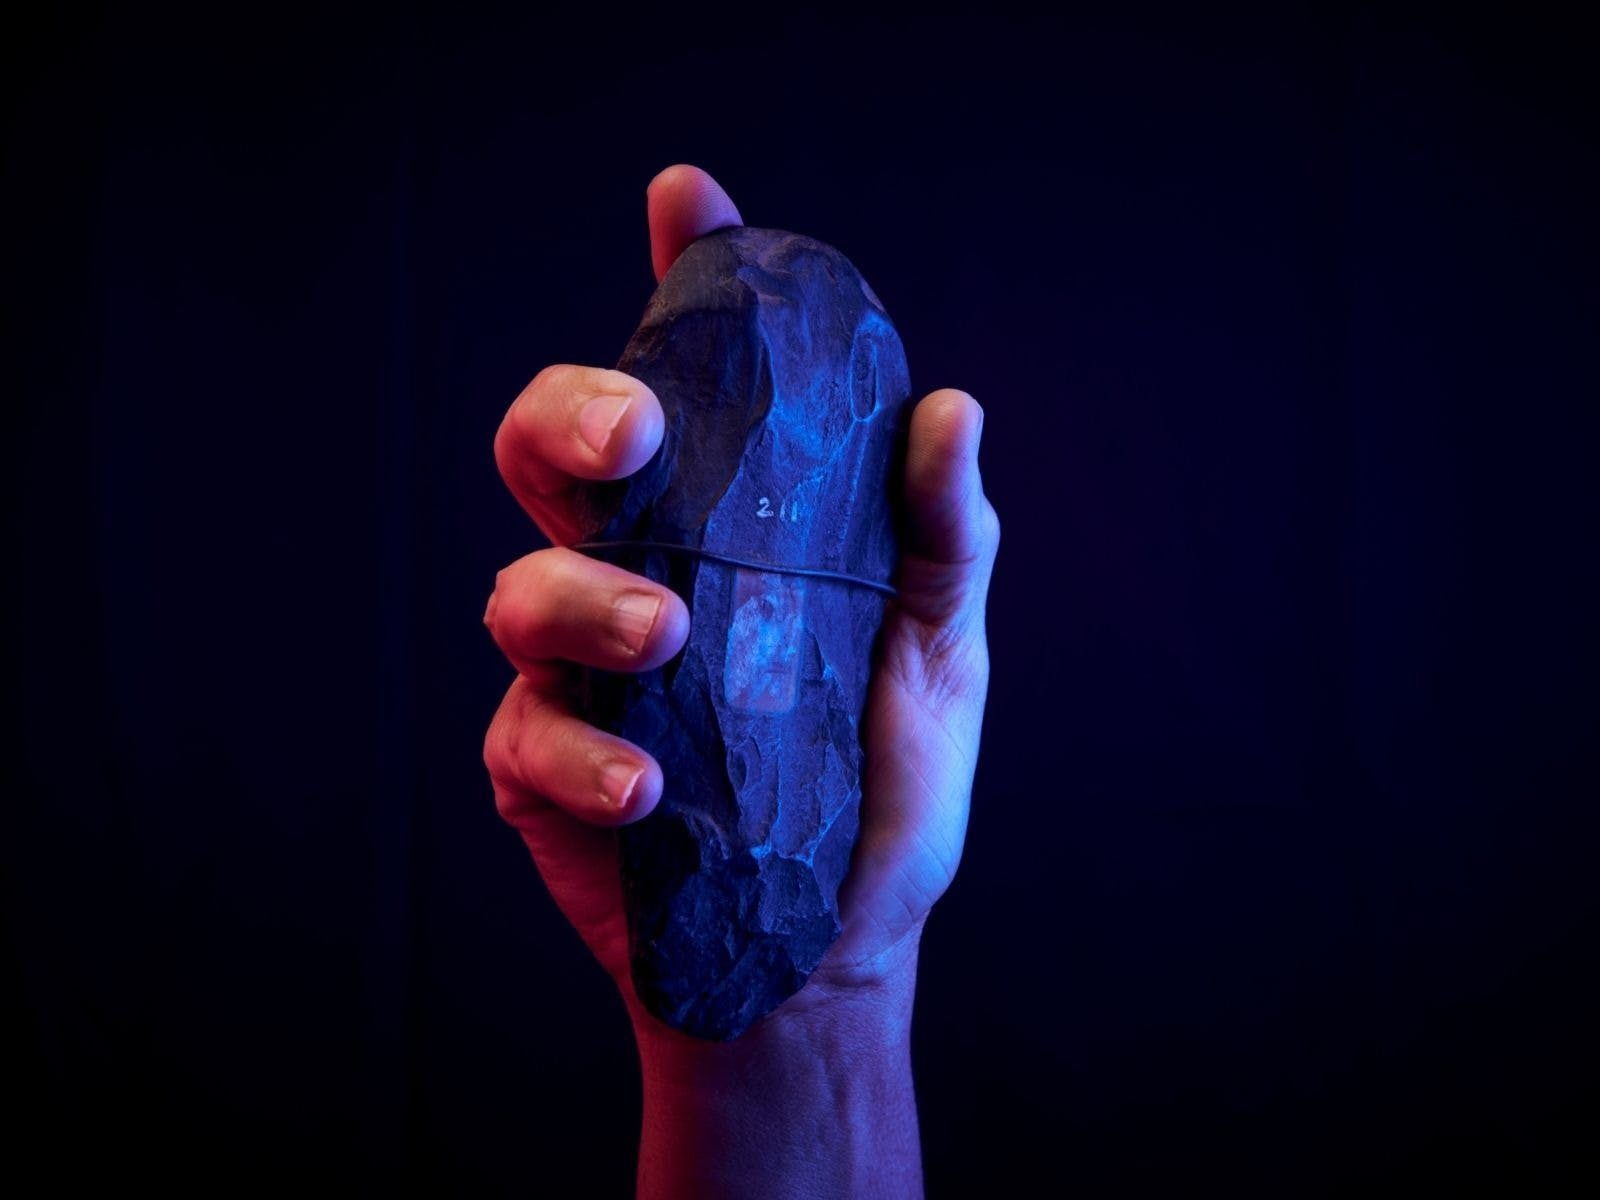 A hand holds a stone